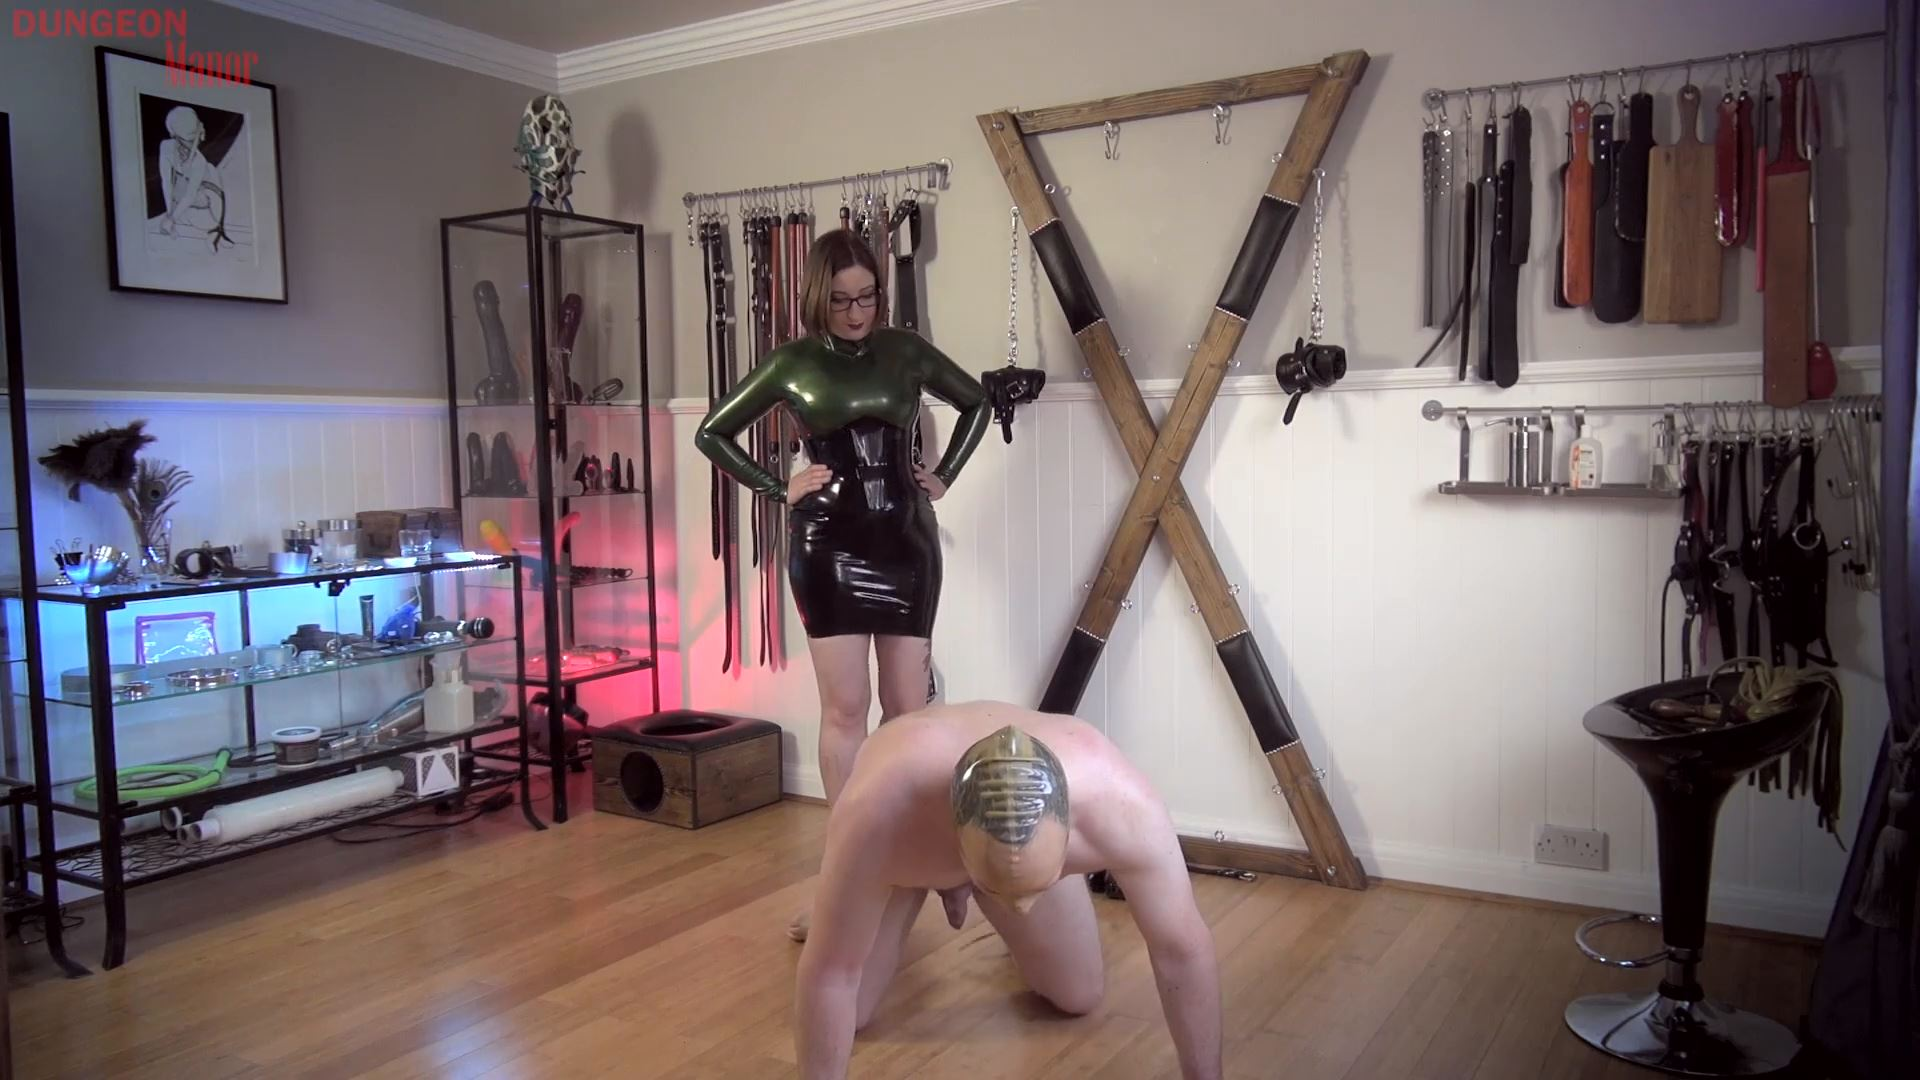 A dungeon Manor Production 426 - MISTRESS EVILYNE - FULL HD/1080p/MP4